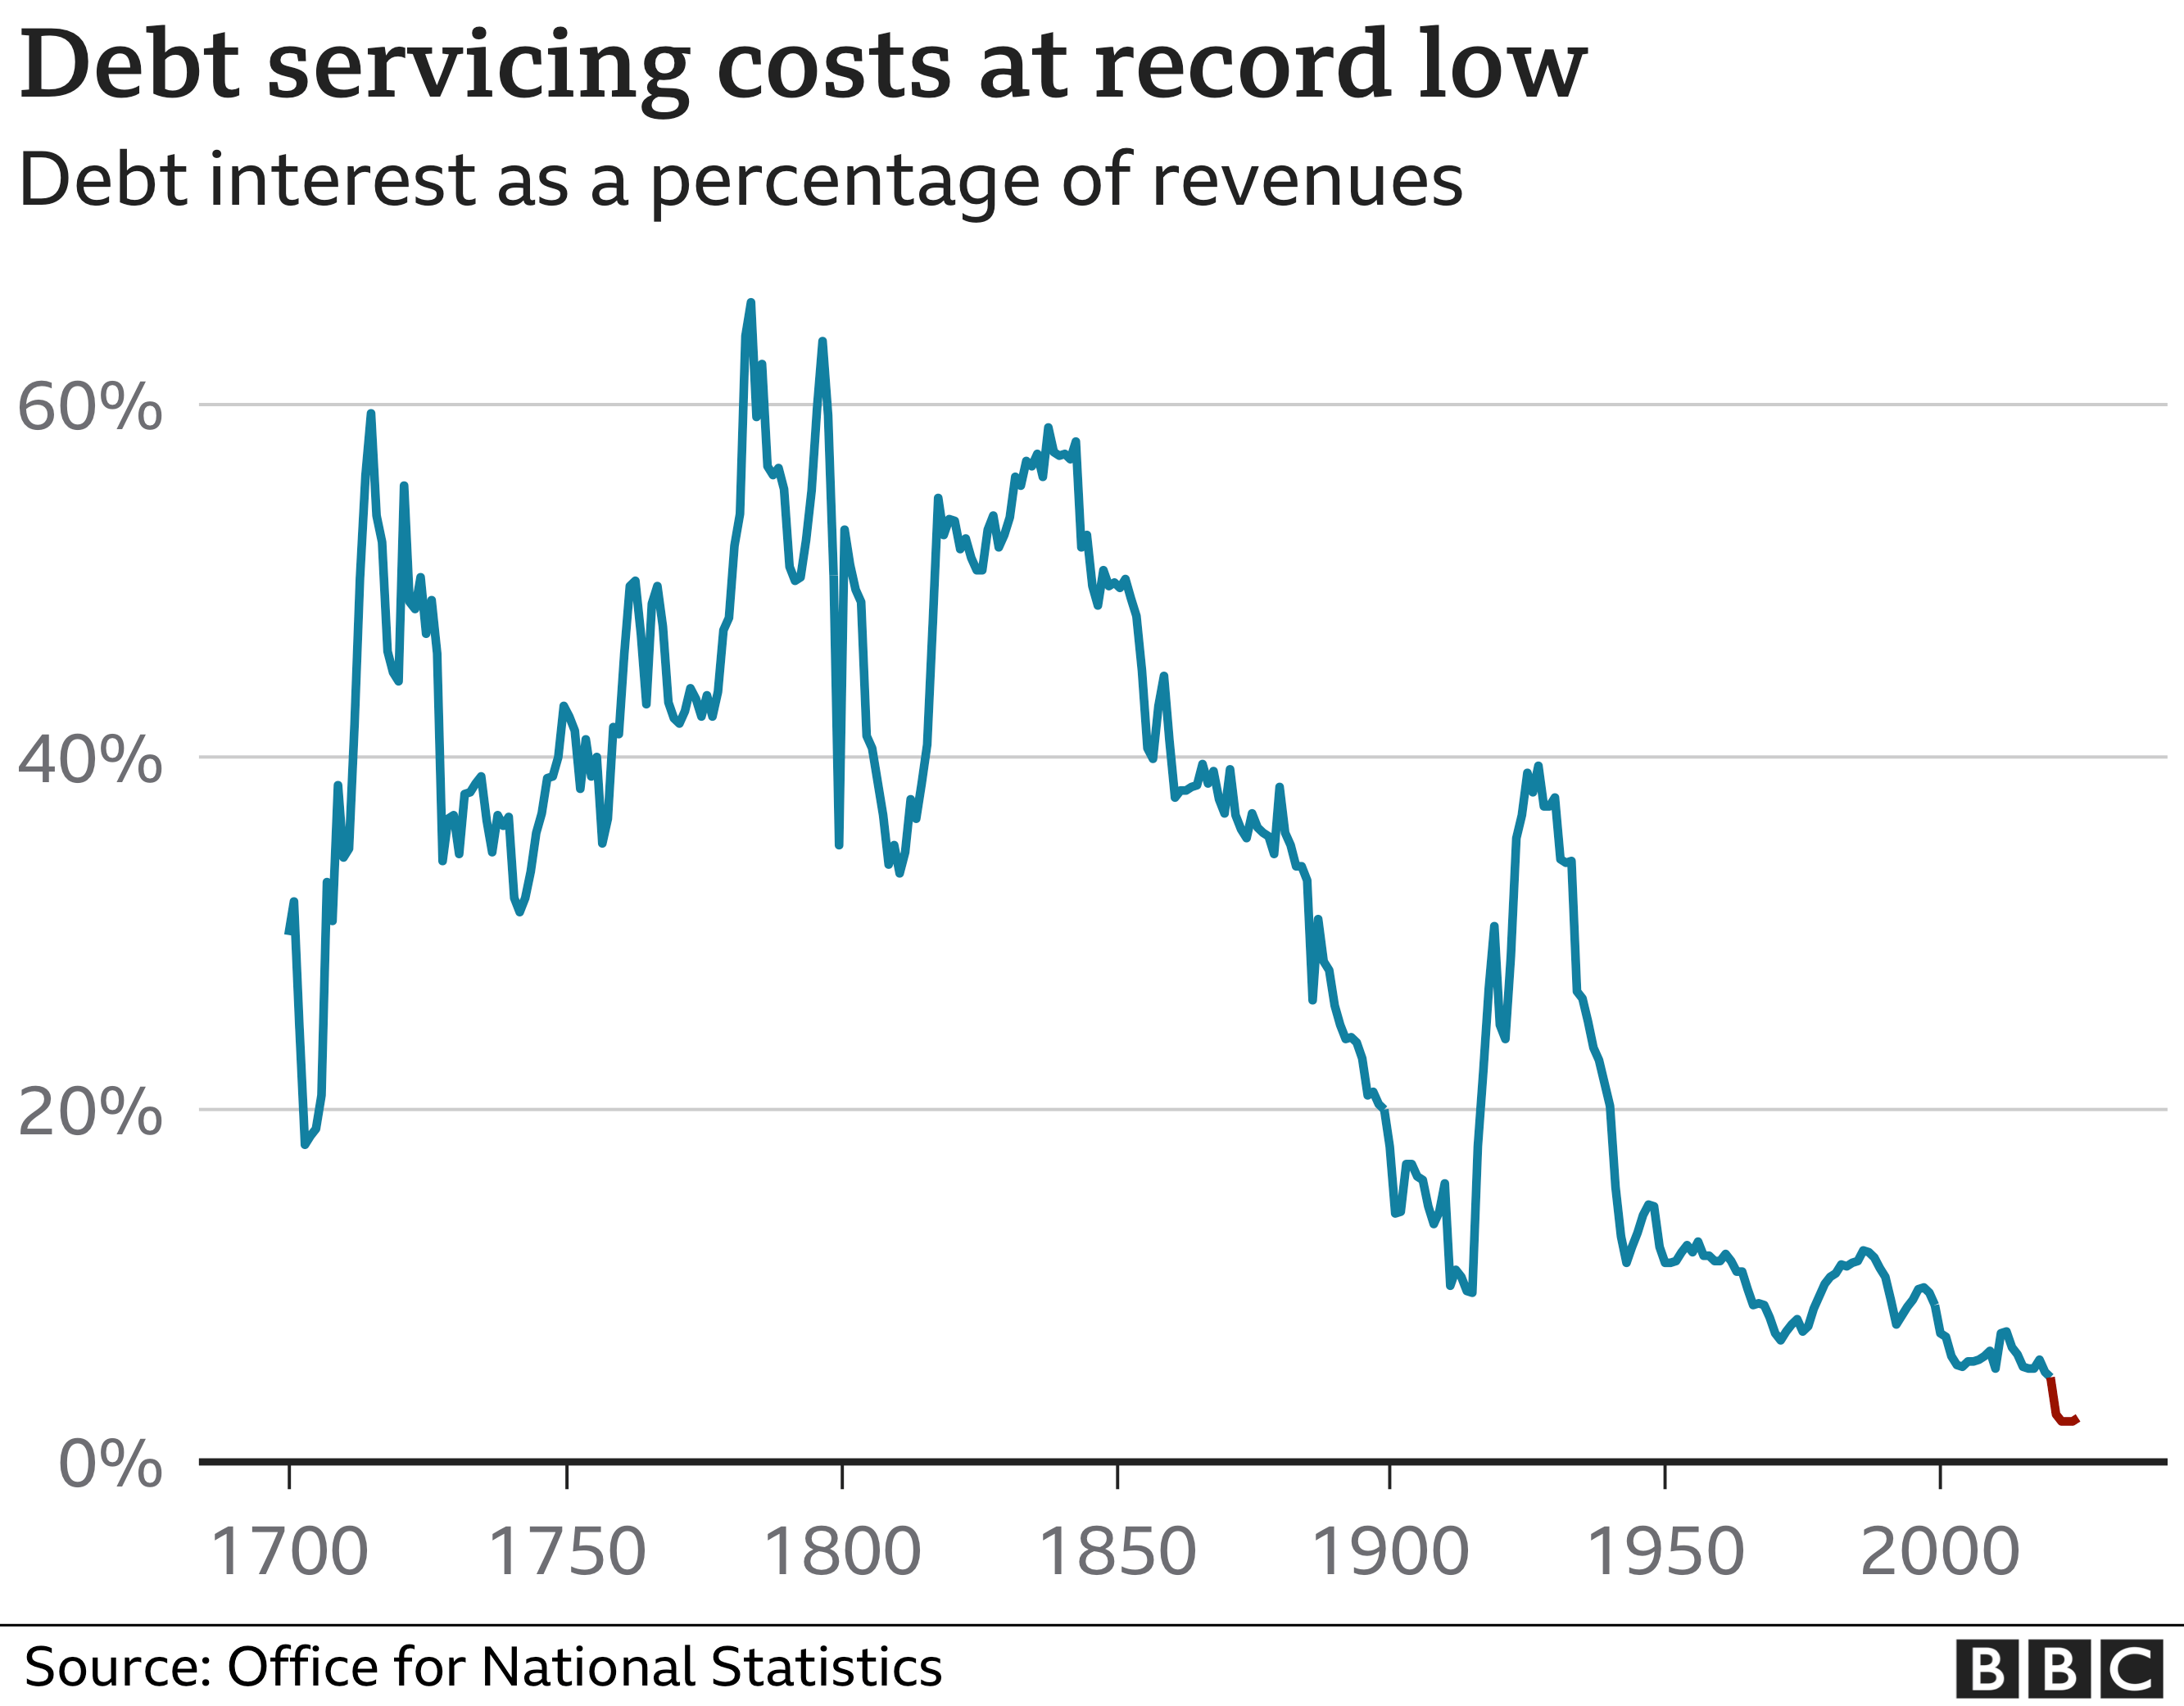 Chart showing the cost of servicing the UK - currently lower than at any point since before 1700